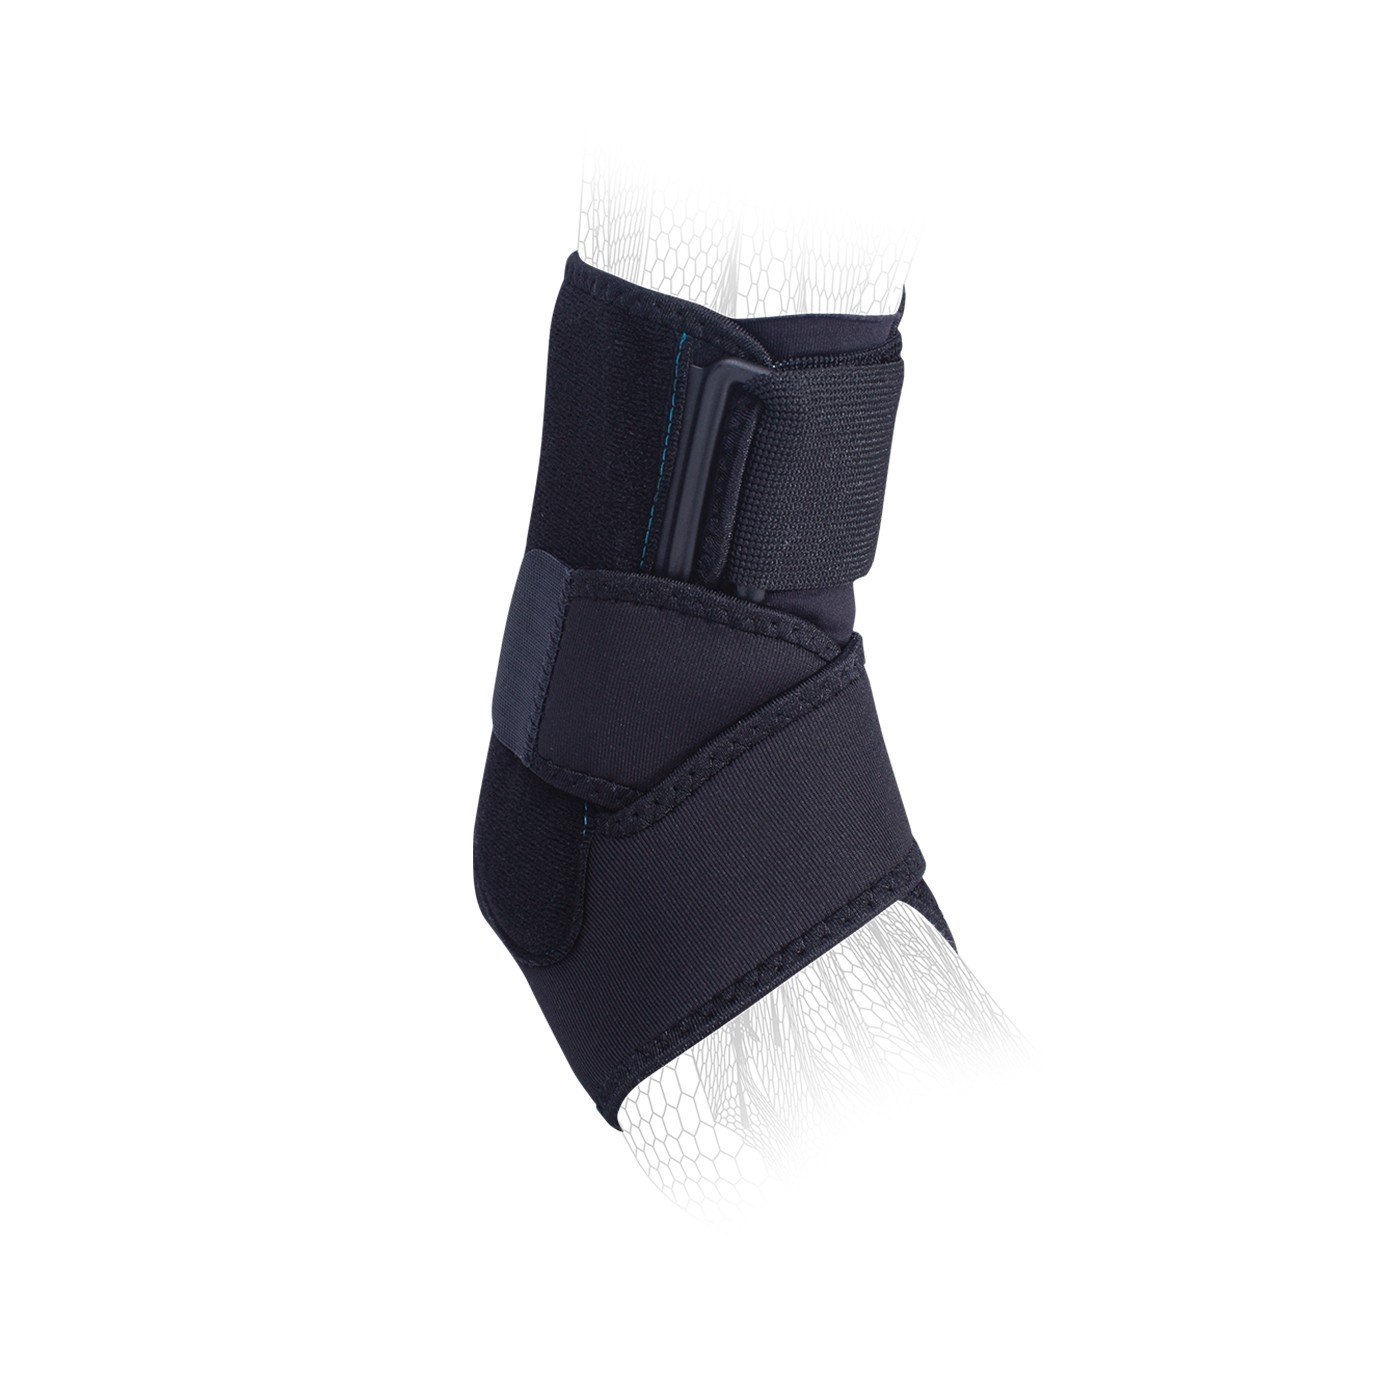 DonJoy Advantage Stabilizing Ankle Brace